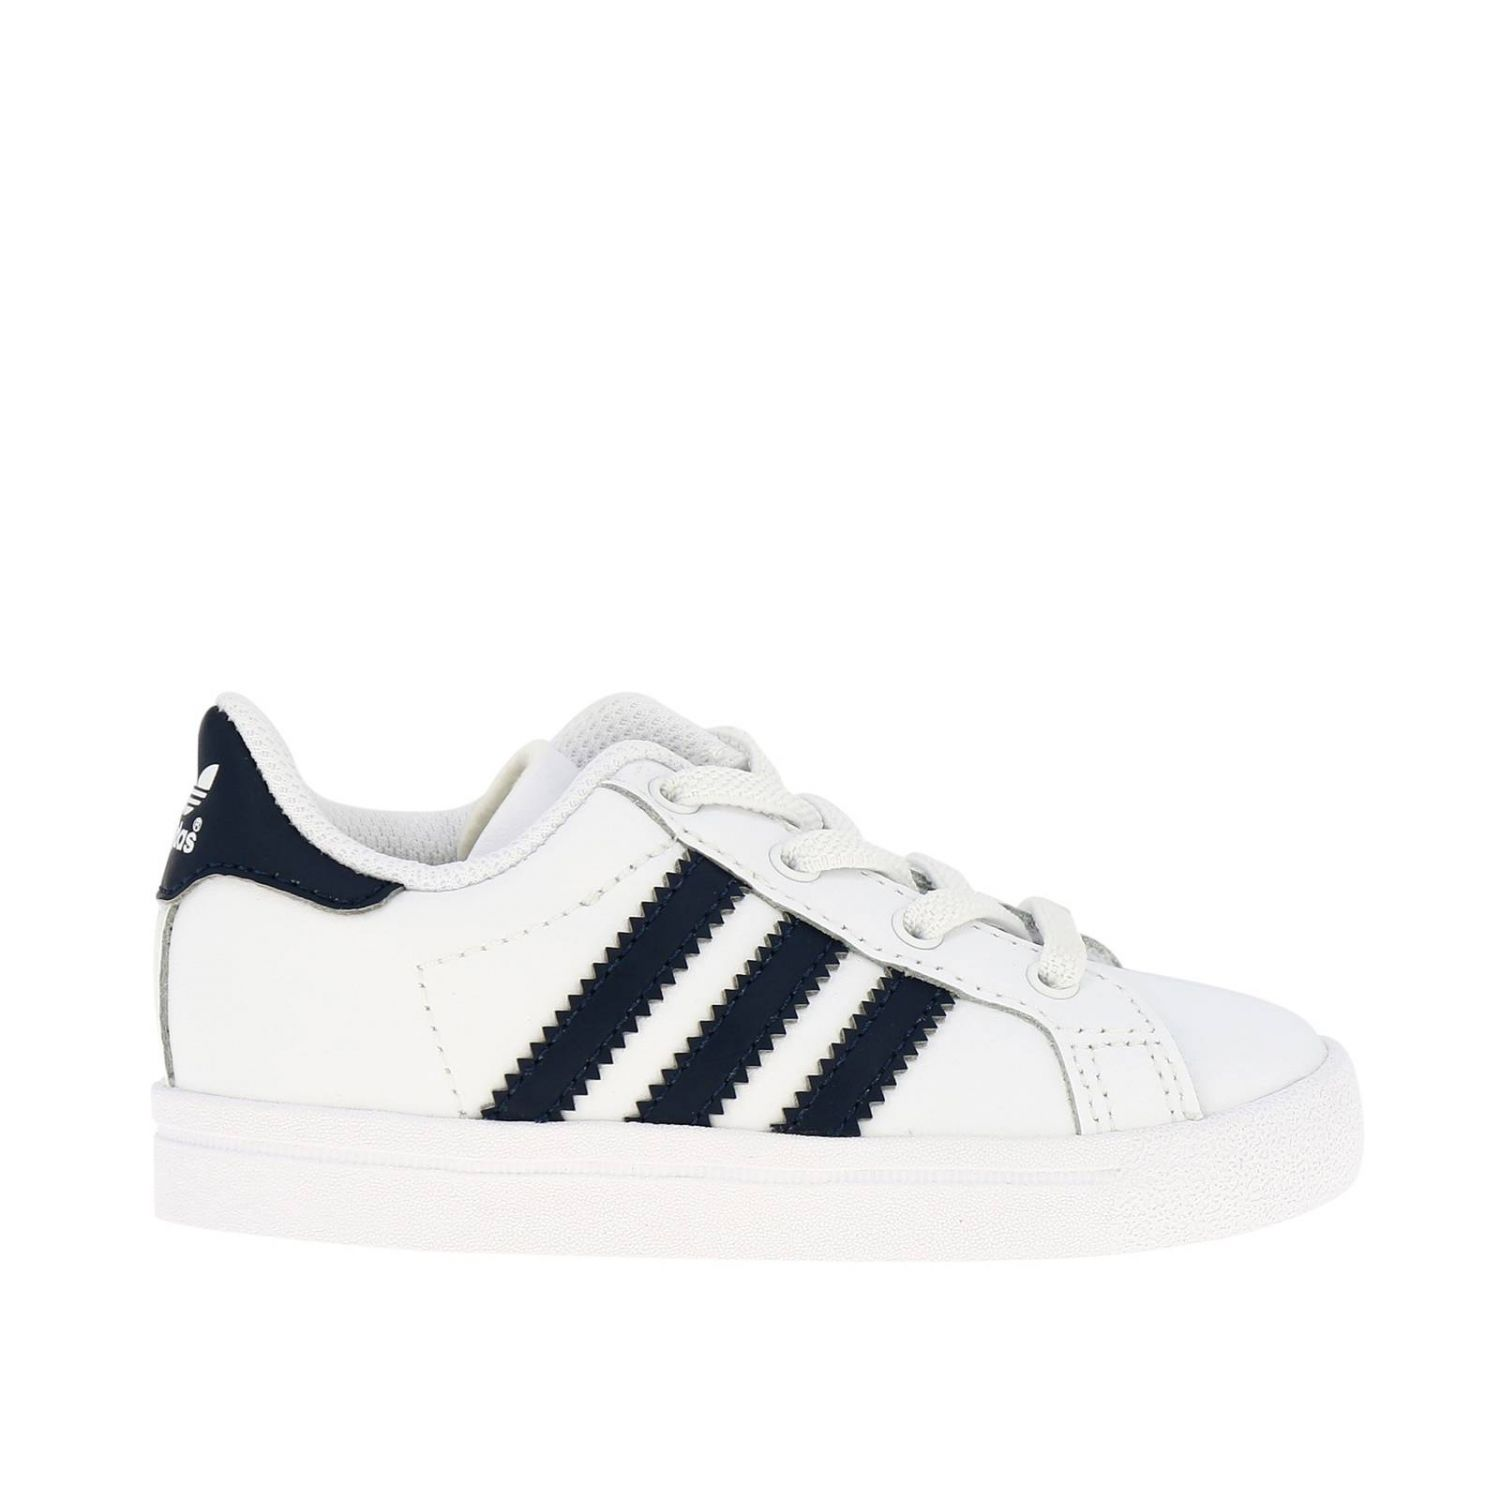 Coast star EL I Adidas Originals leather sneakers with contrasting bands